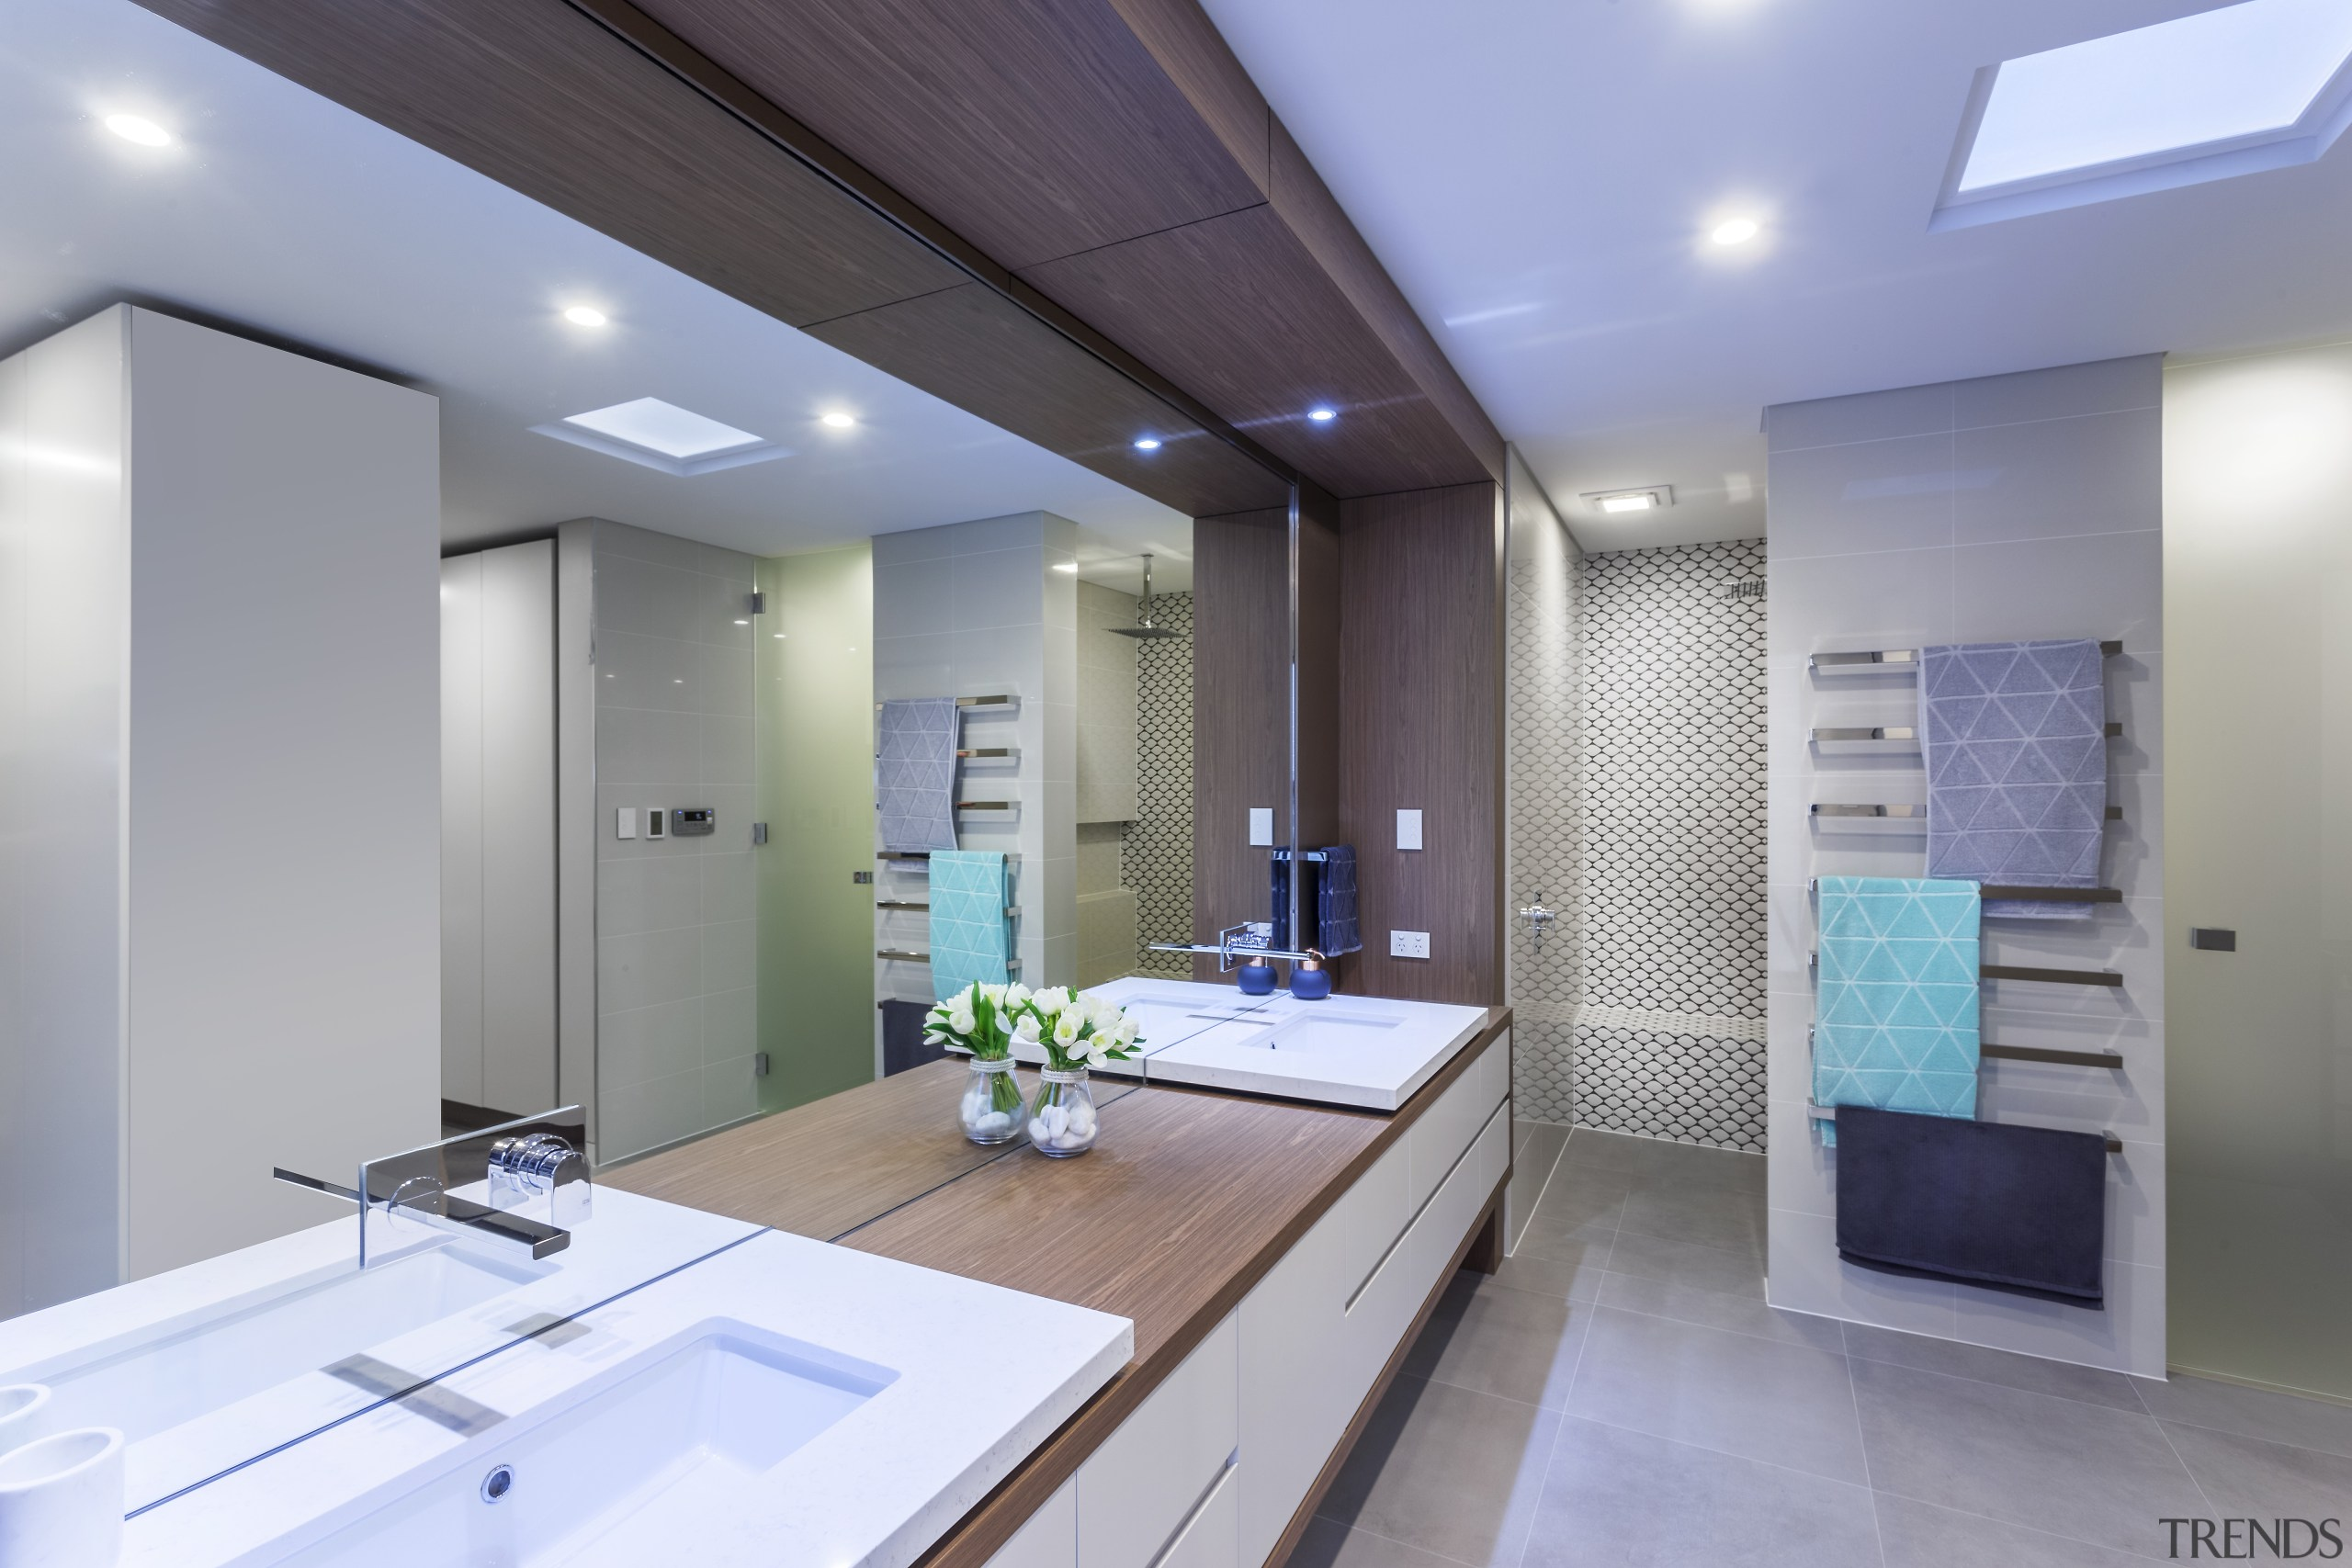 This master ensuite in an award-winning home includes architecture, bathroom, ceiling, countertop, daylighting, interior design, kitchen, real estate, room, gray